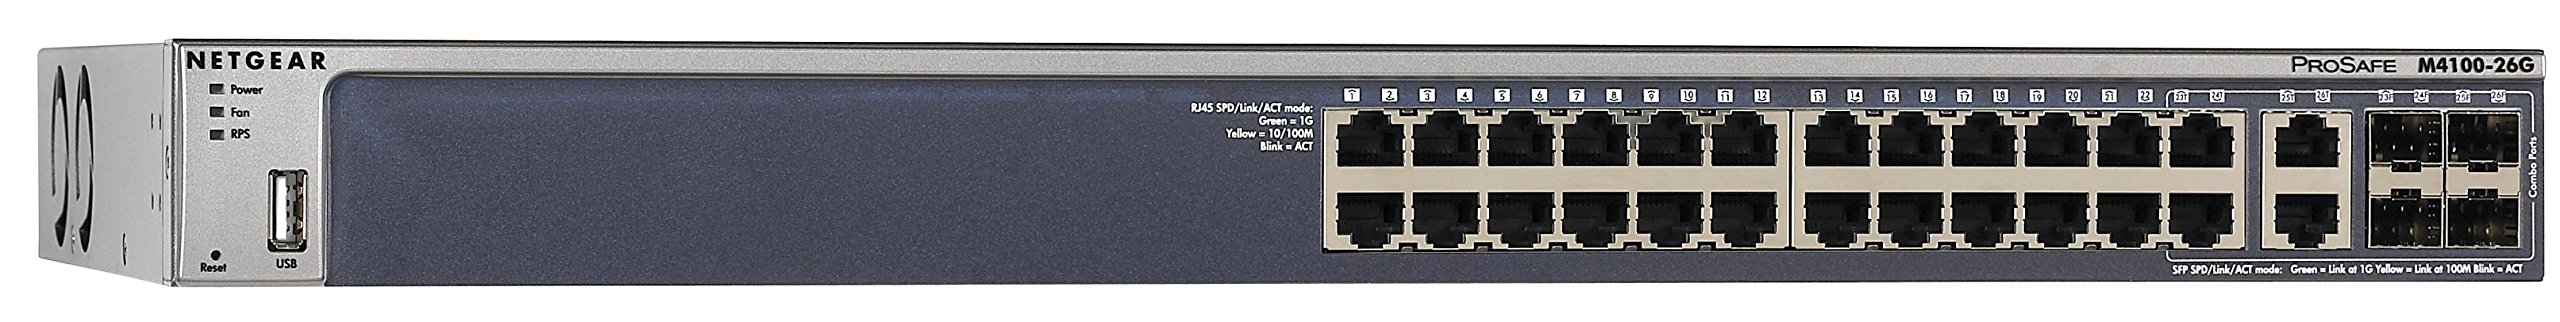 NETGEAR ProSAFE M4100-26G 26-Port Gigabit Managed Switch with Fiber Uplinks and Routing (GSM7224-200NAS) by NETGEAR (Image #1)